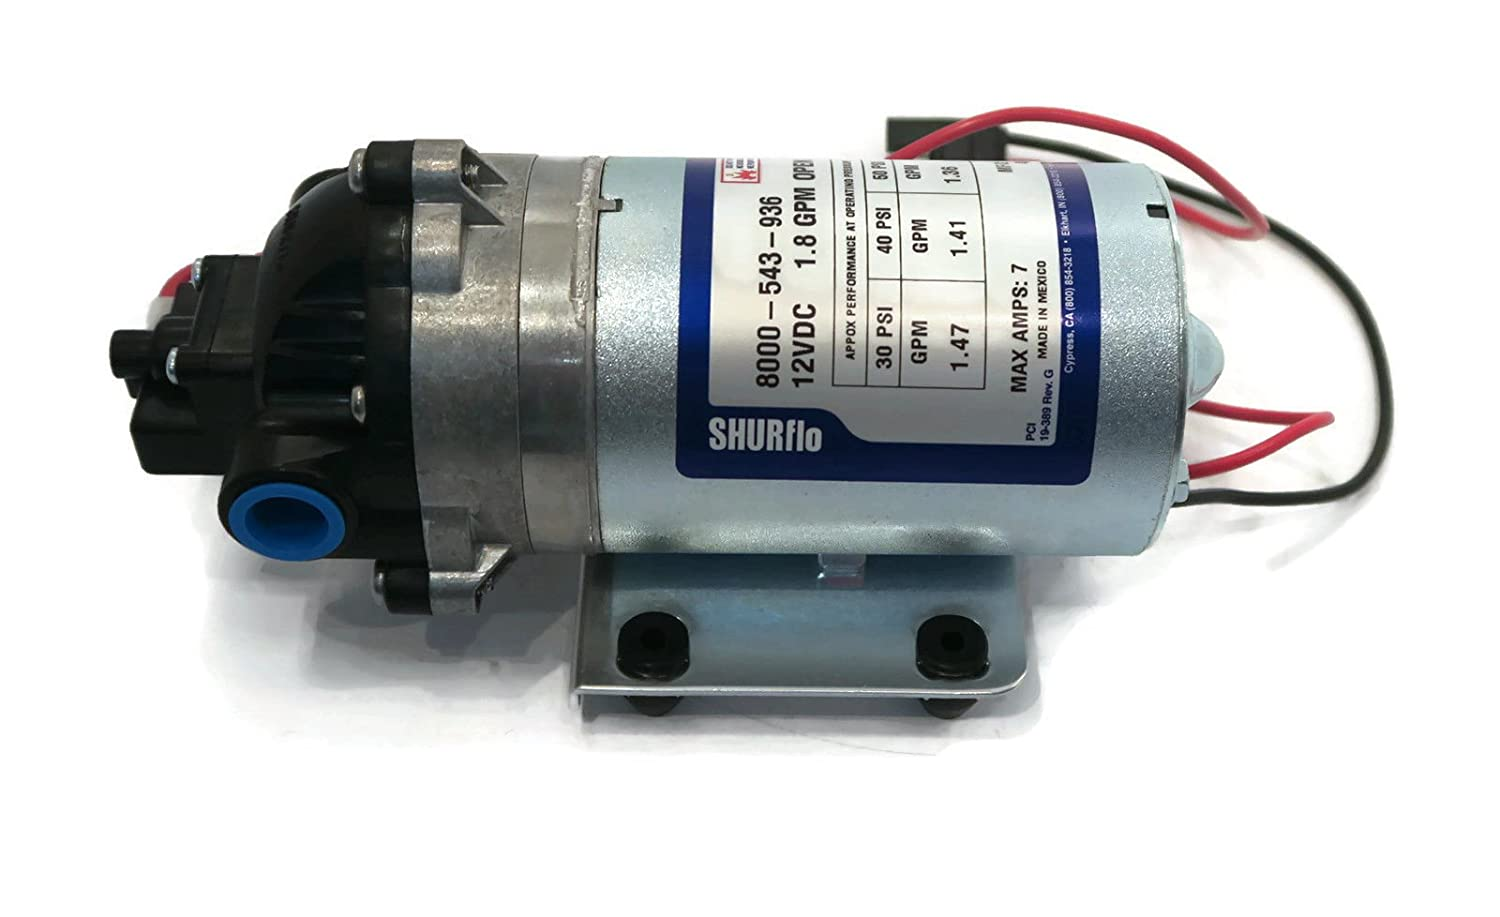 SHURFLO 8000-543-936 Automatic Demand Diaphragm Pump with Wire-Harness Santoprene Diaphragm with Viton Valves 12V 1.8GPM 60PSI Agricultural Spraying and Fluid Transfer